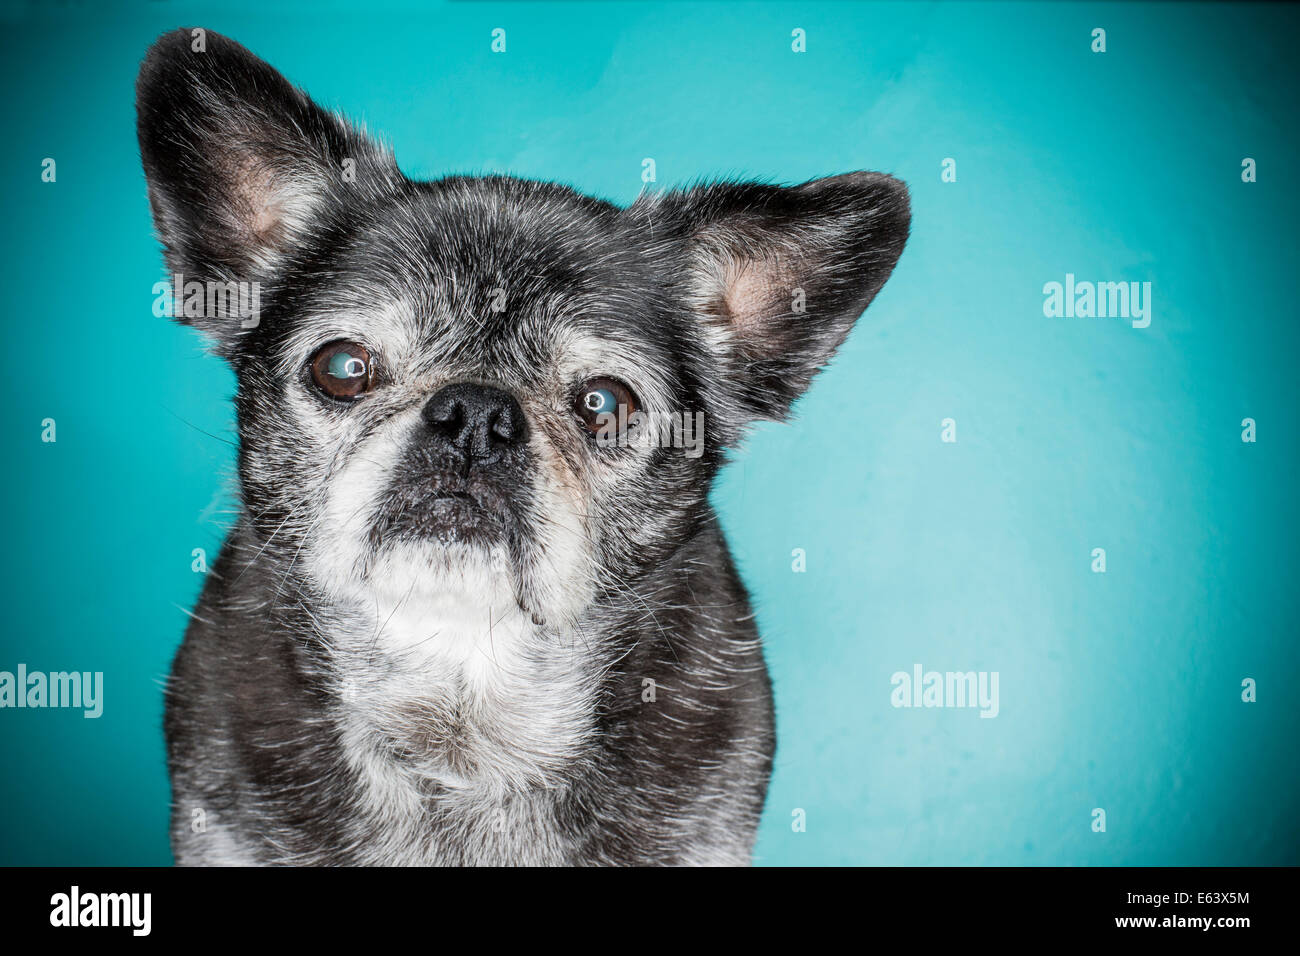 An old gray haired dog, pug dog, lit with a ring flash strobe against a blue background - Stock Image